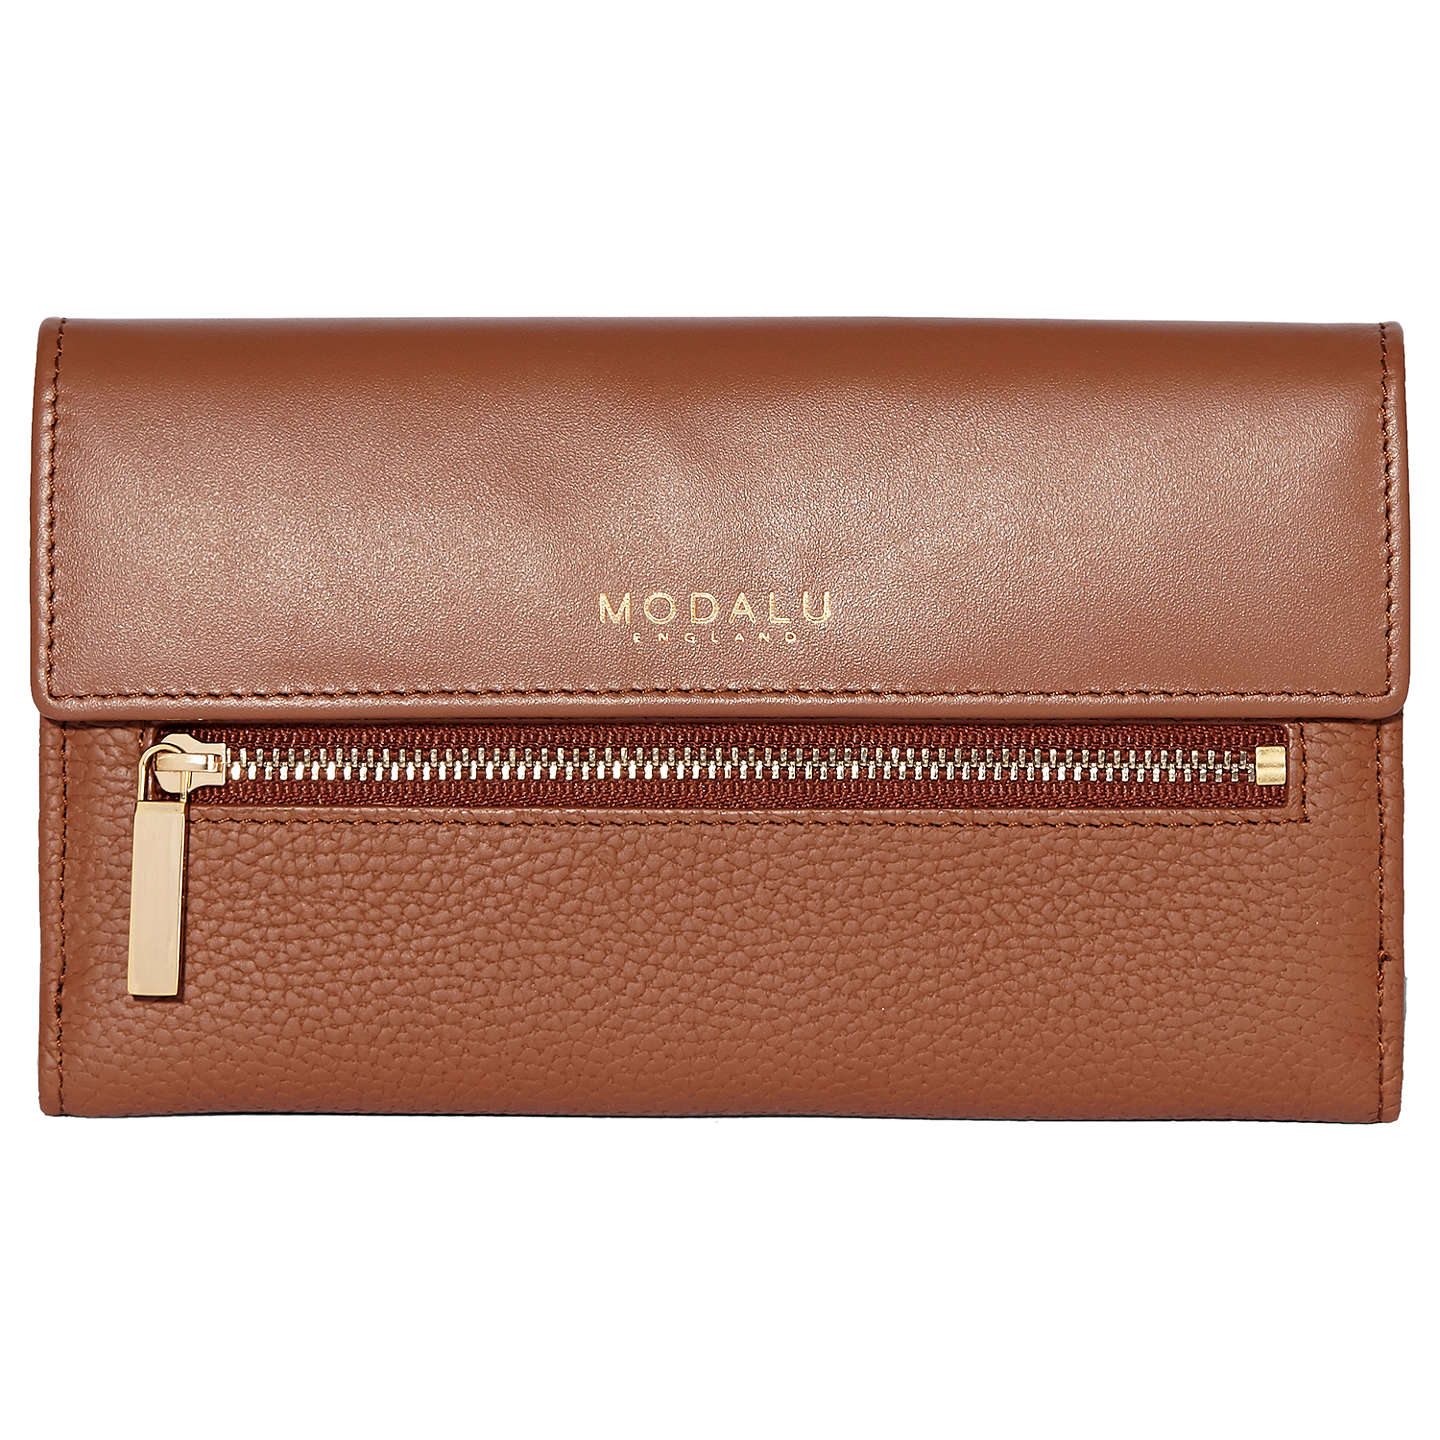 Modalu Erin Leather Continental Purse, Brown